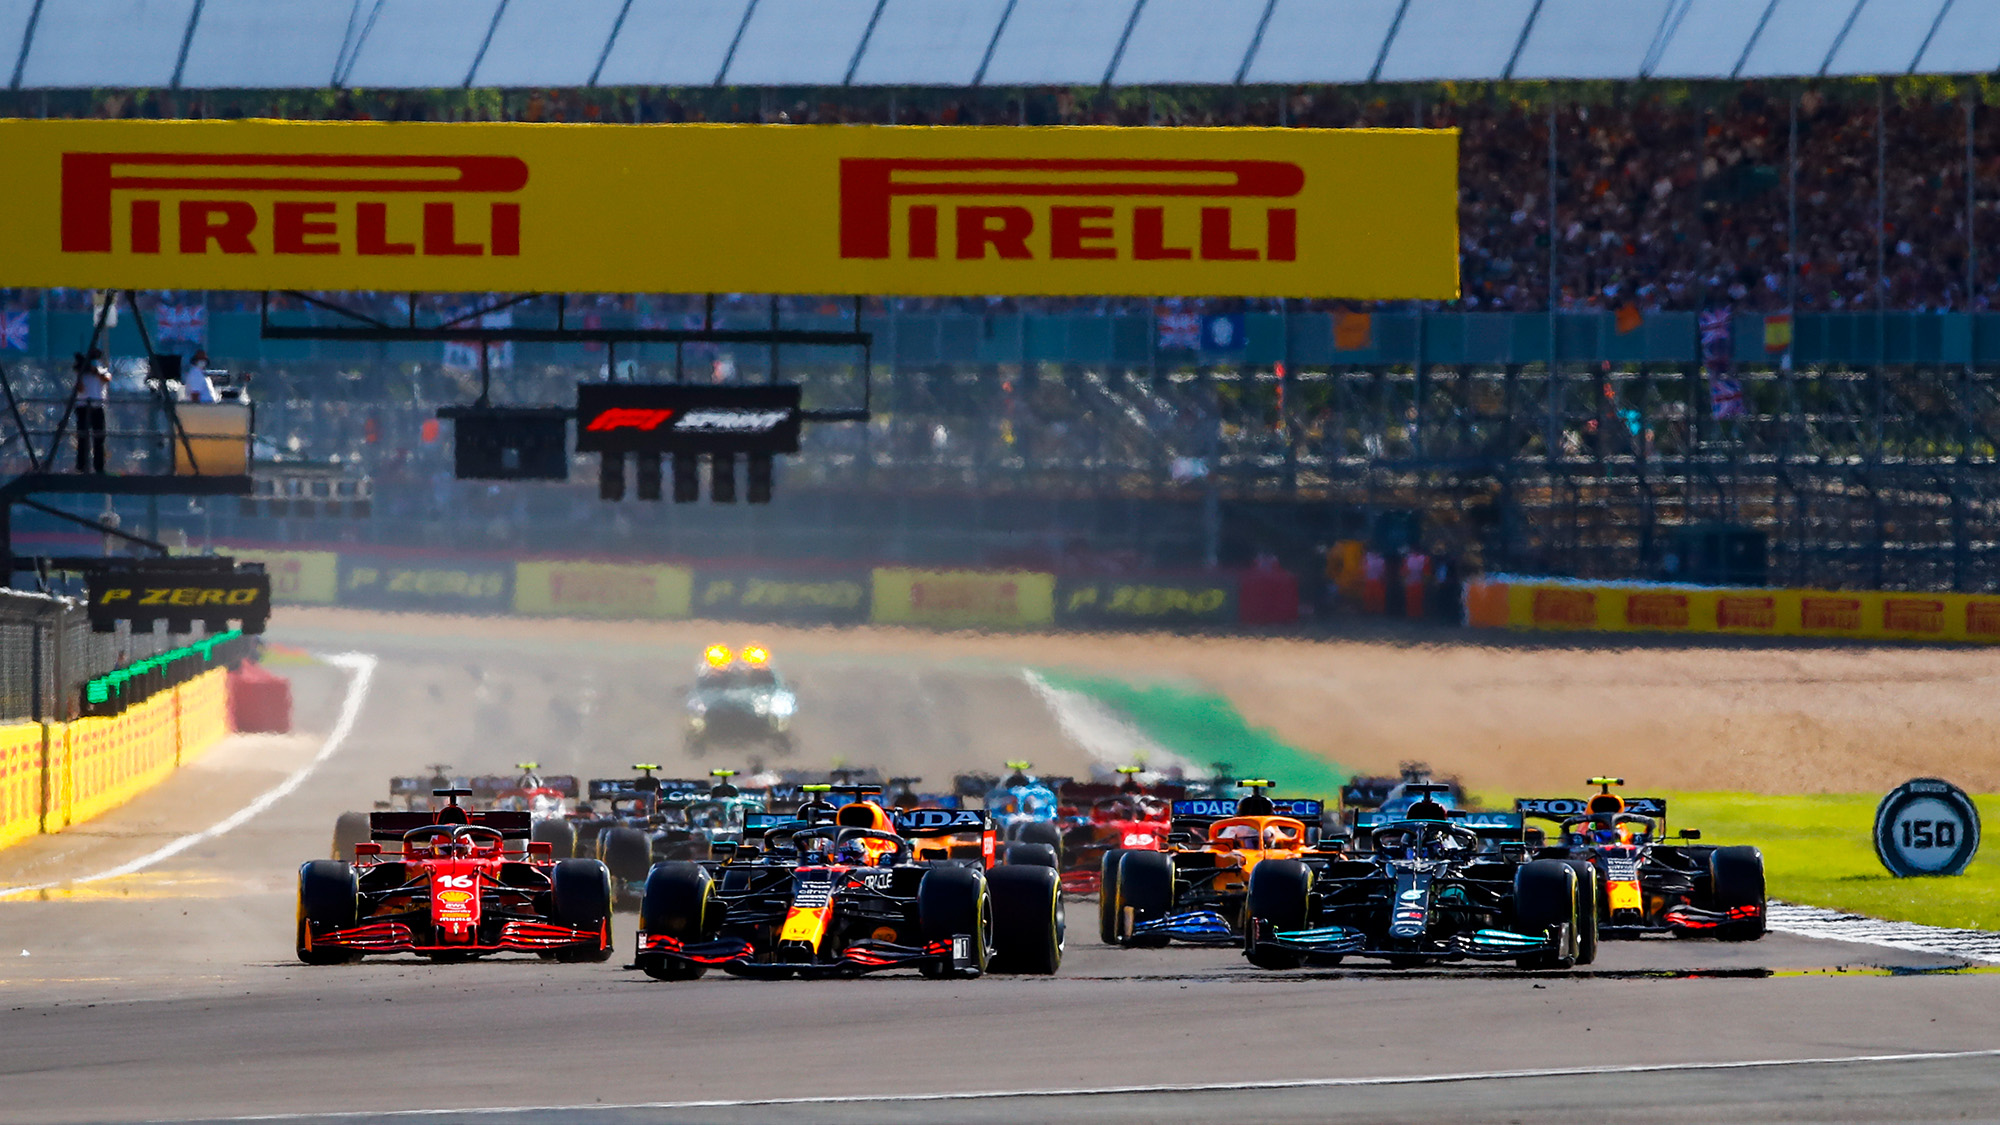 Start of the qualifying sprint race for the 2021 British Grand Prix